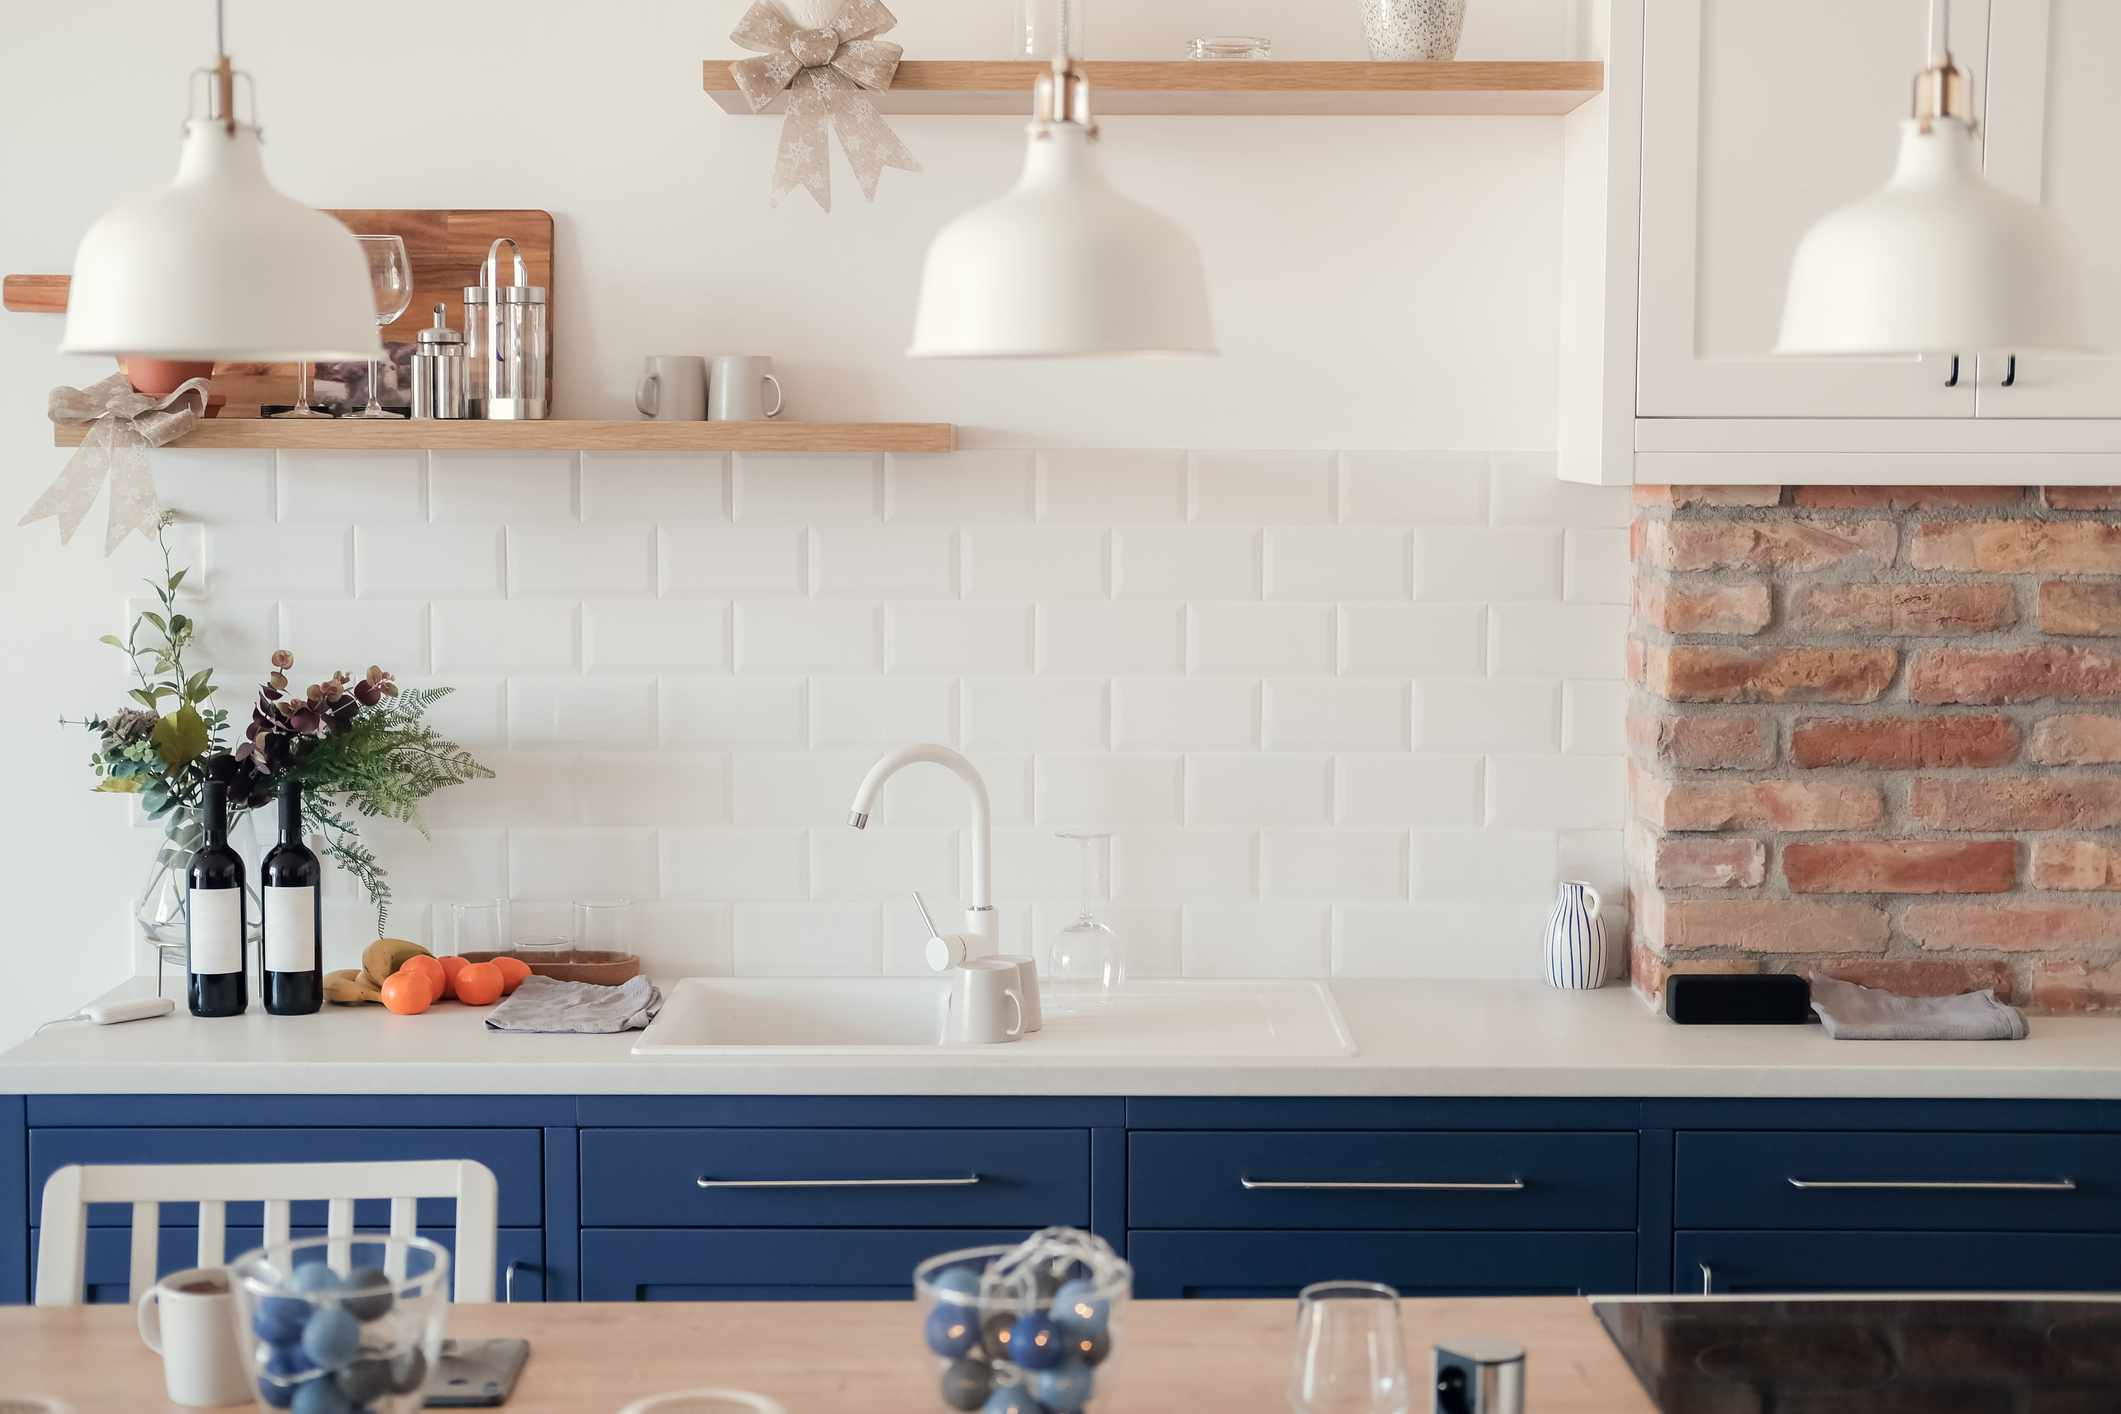 Painted white countertops in a kitchen